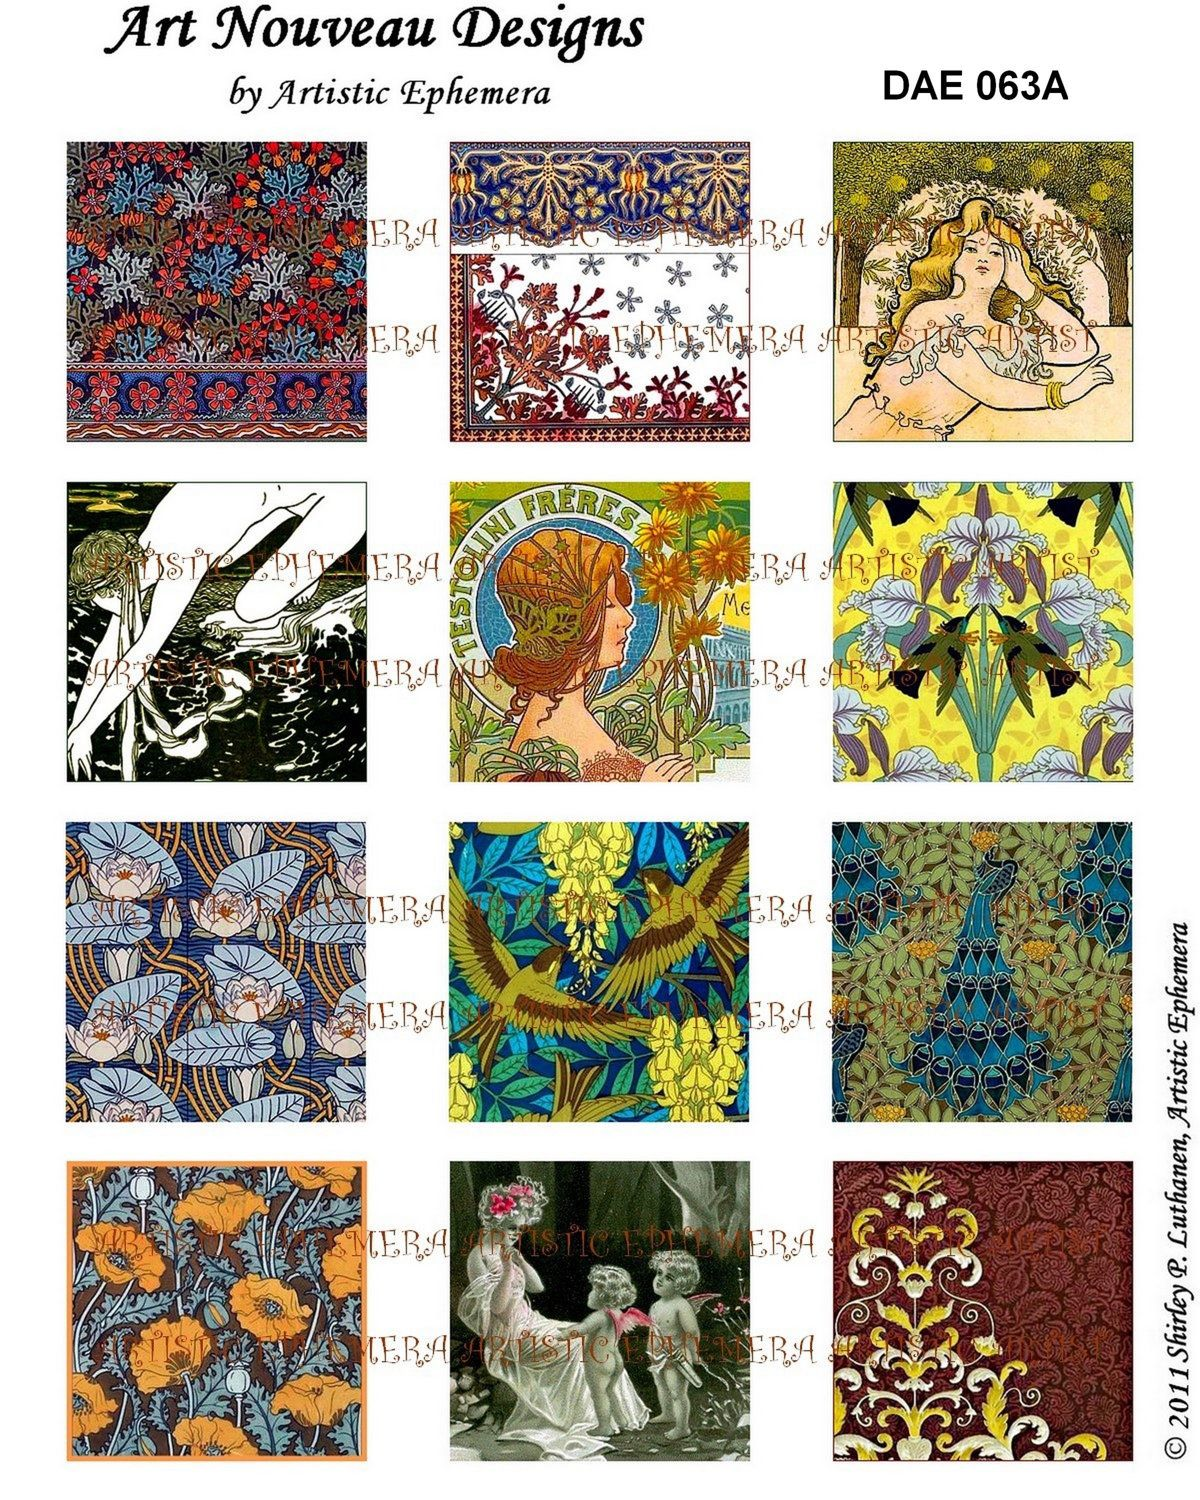 DAE063A Beautiful Art Nouveau Designs I